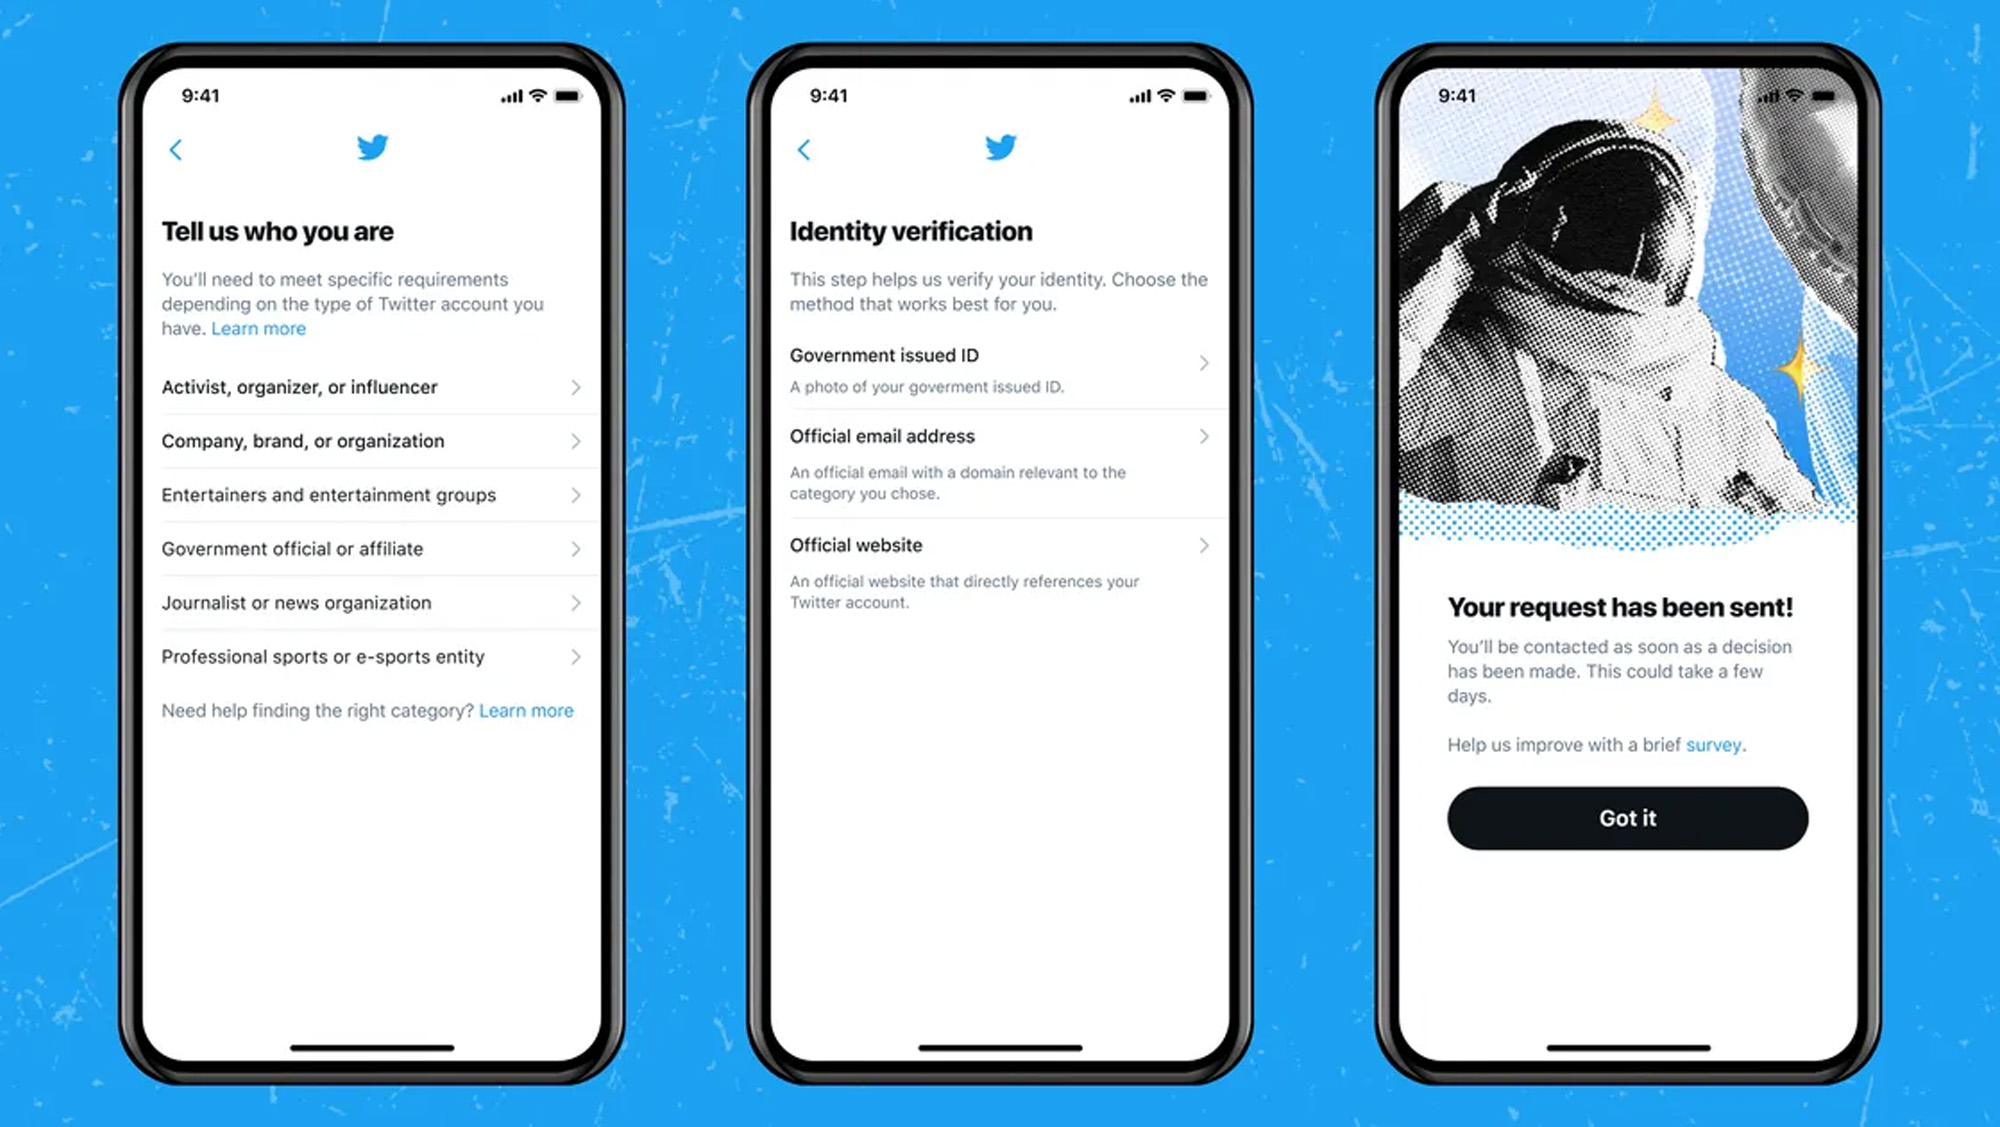 the twitter verification application